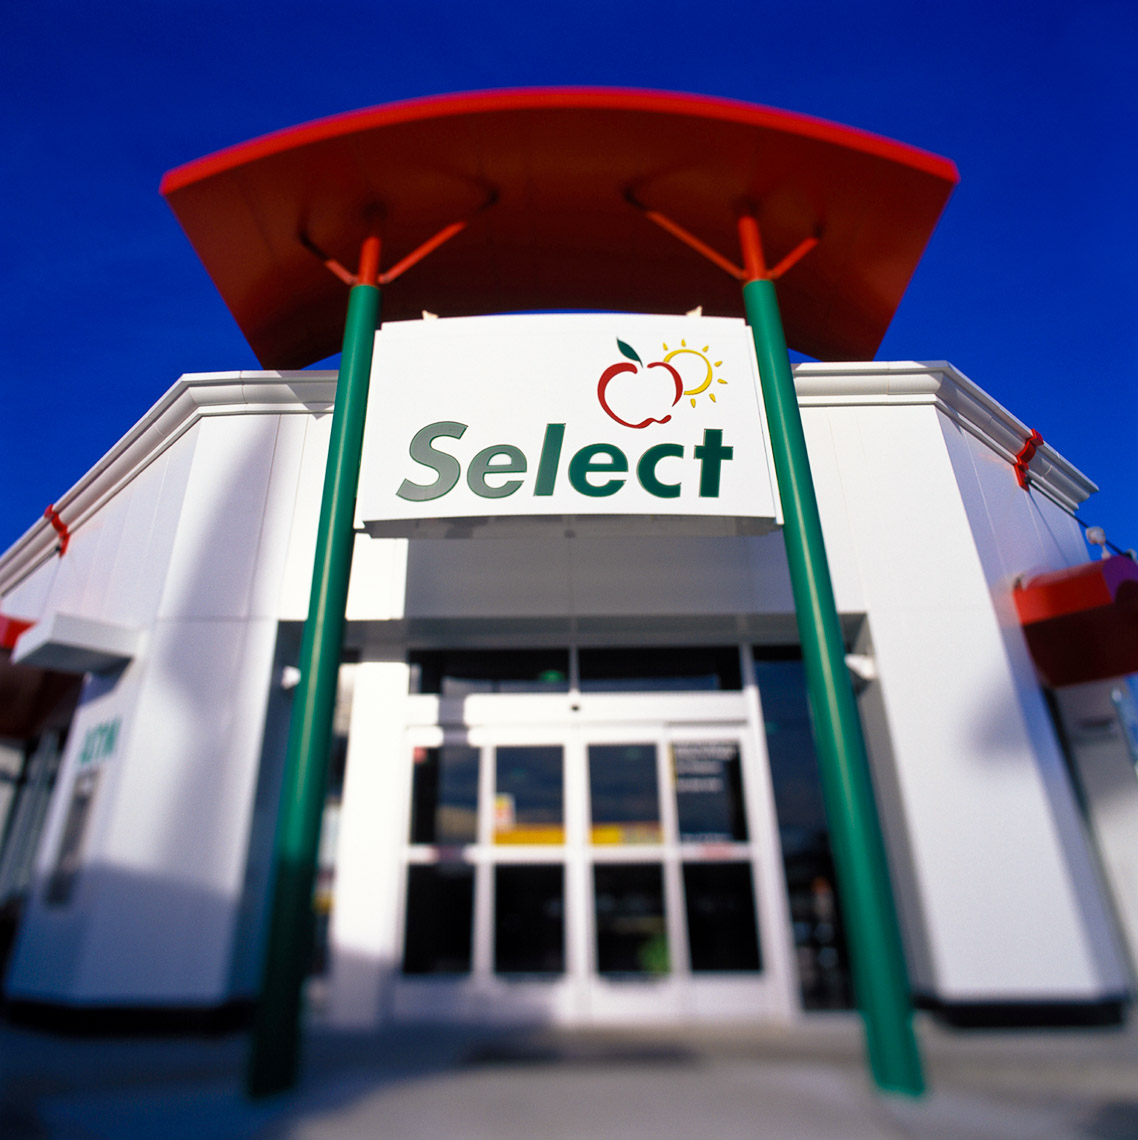 Shell Select Convenience Store - Entrance